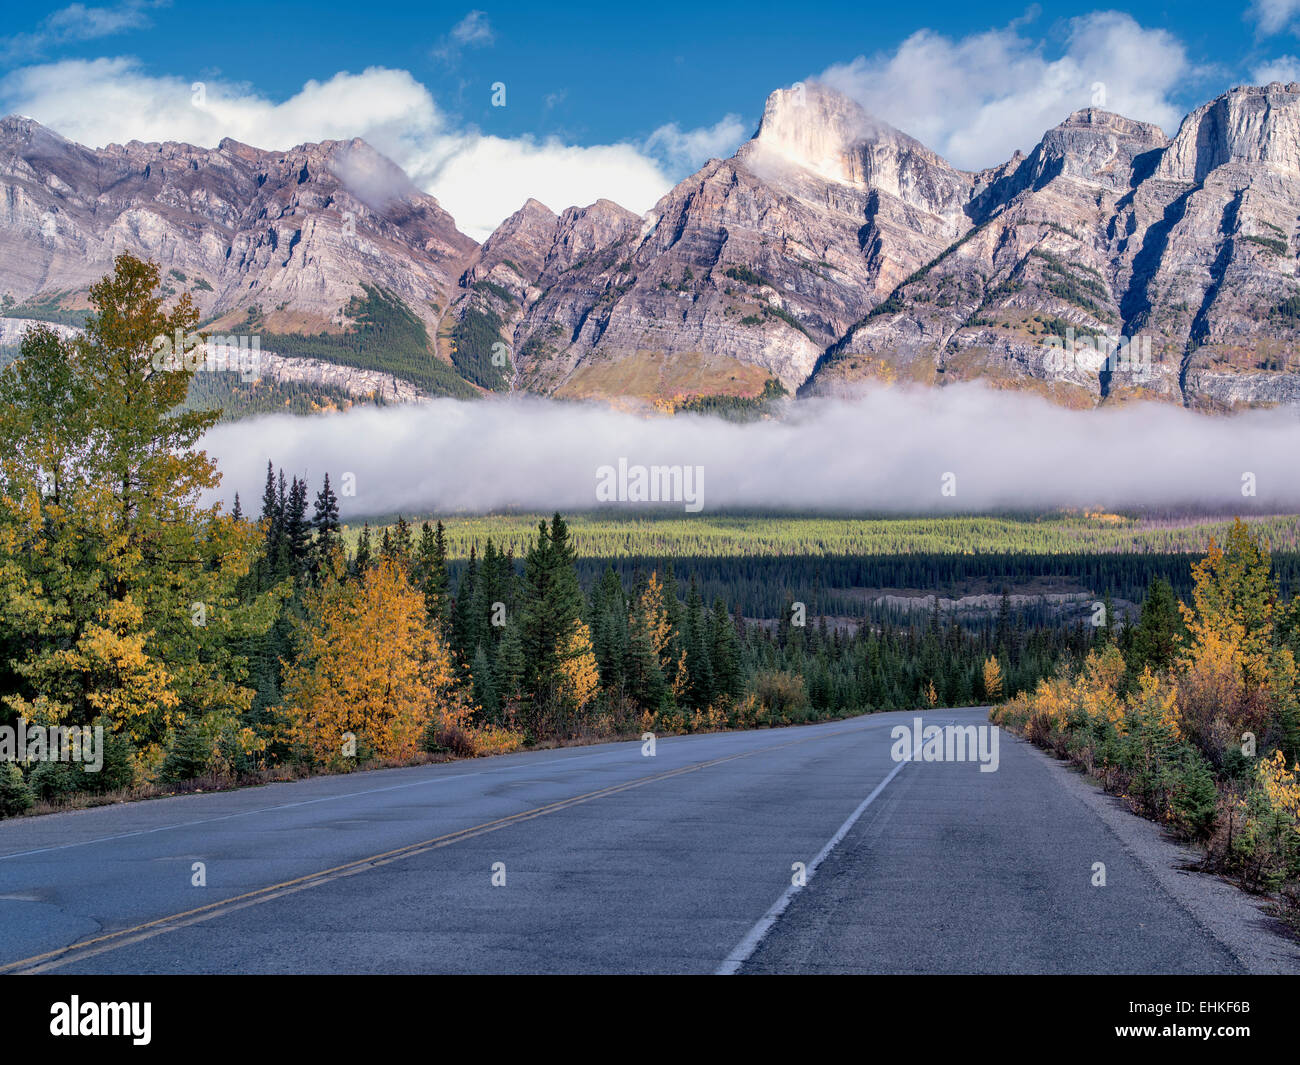 Road, fog and low clouds with autumn colors. Banff National Park. Alberta, Canada Stock Photo